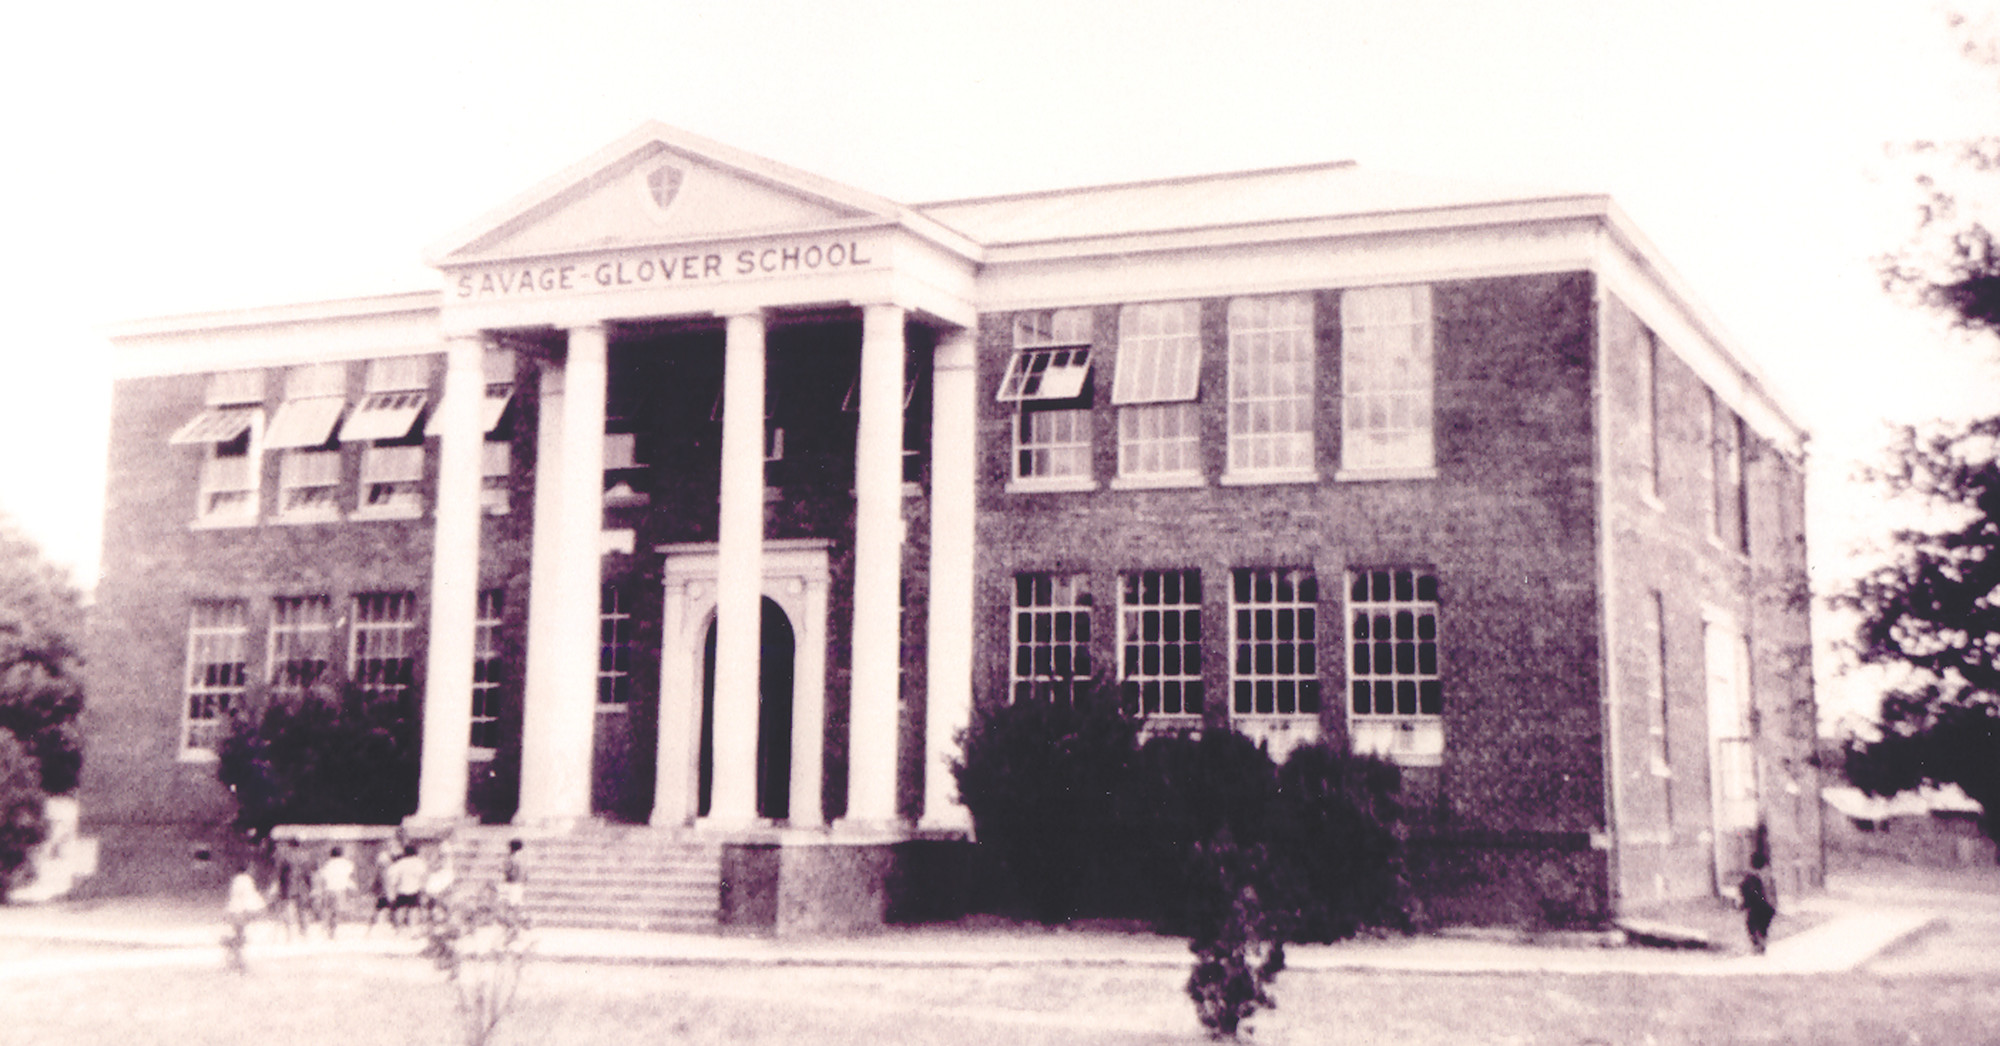 Savage-Glover School was the site of one of four parks opened by the recreational association in 1940.